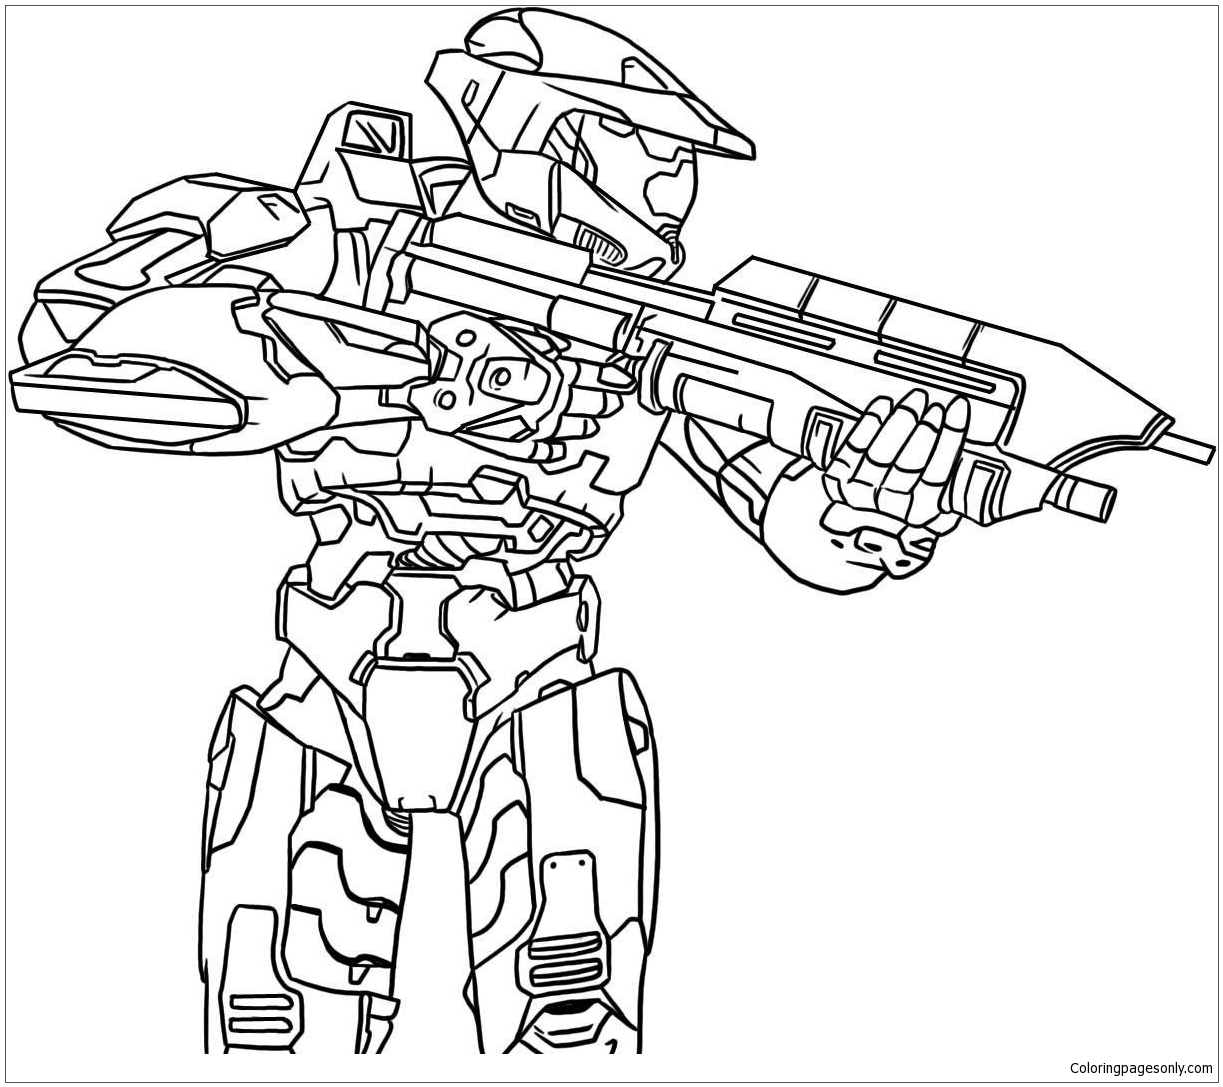 The Knight Halo Coloring Page - Free Coloring Pages Online